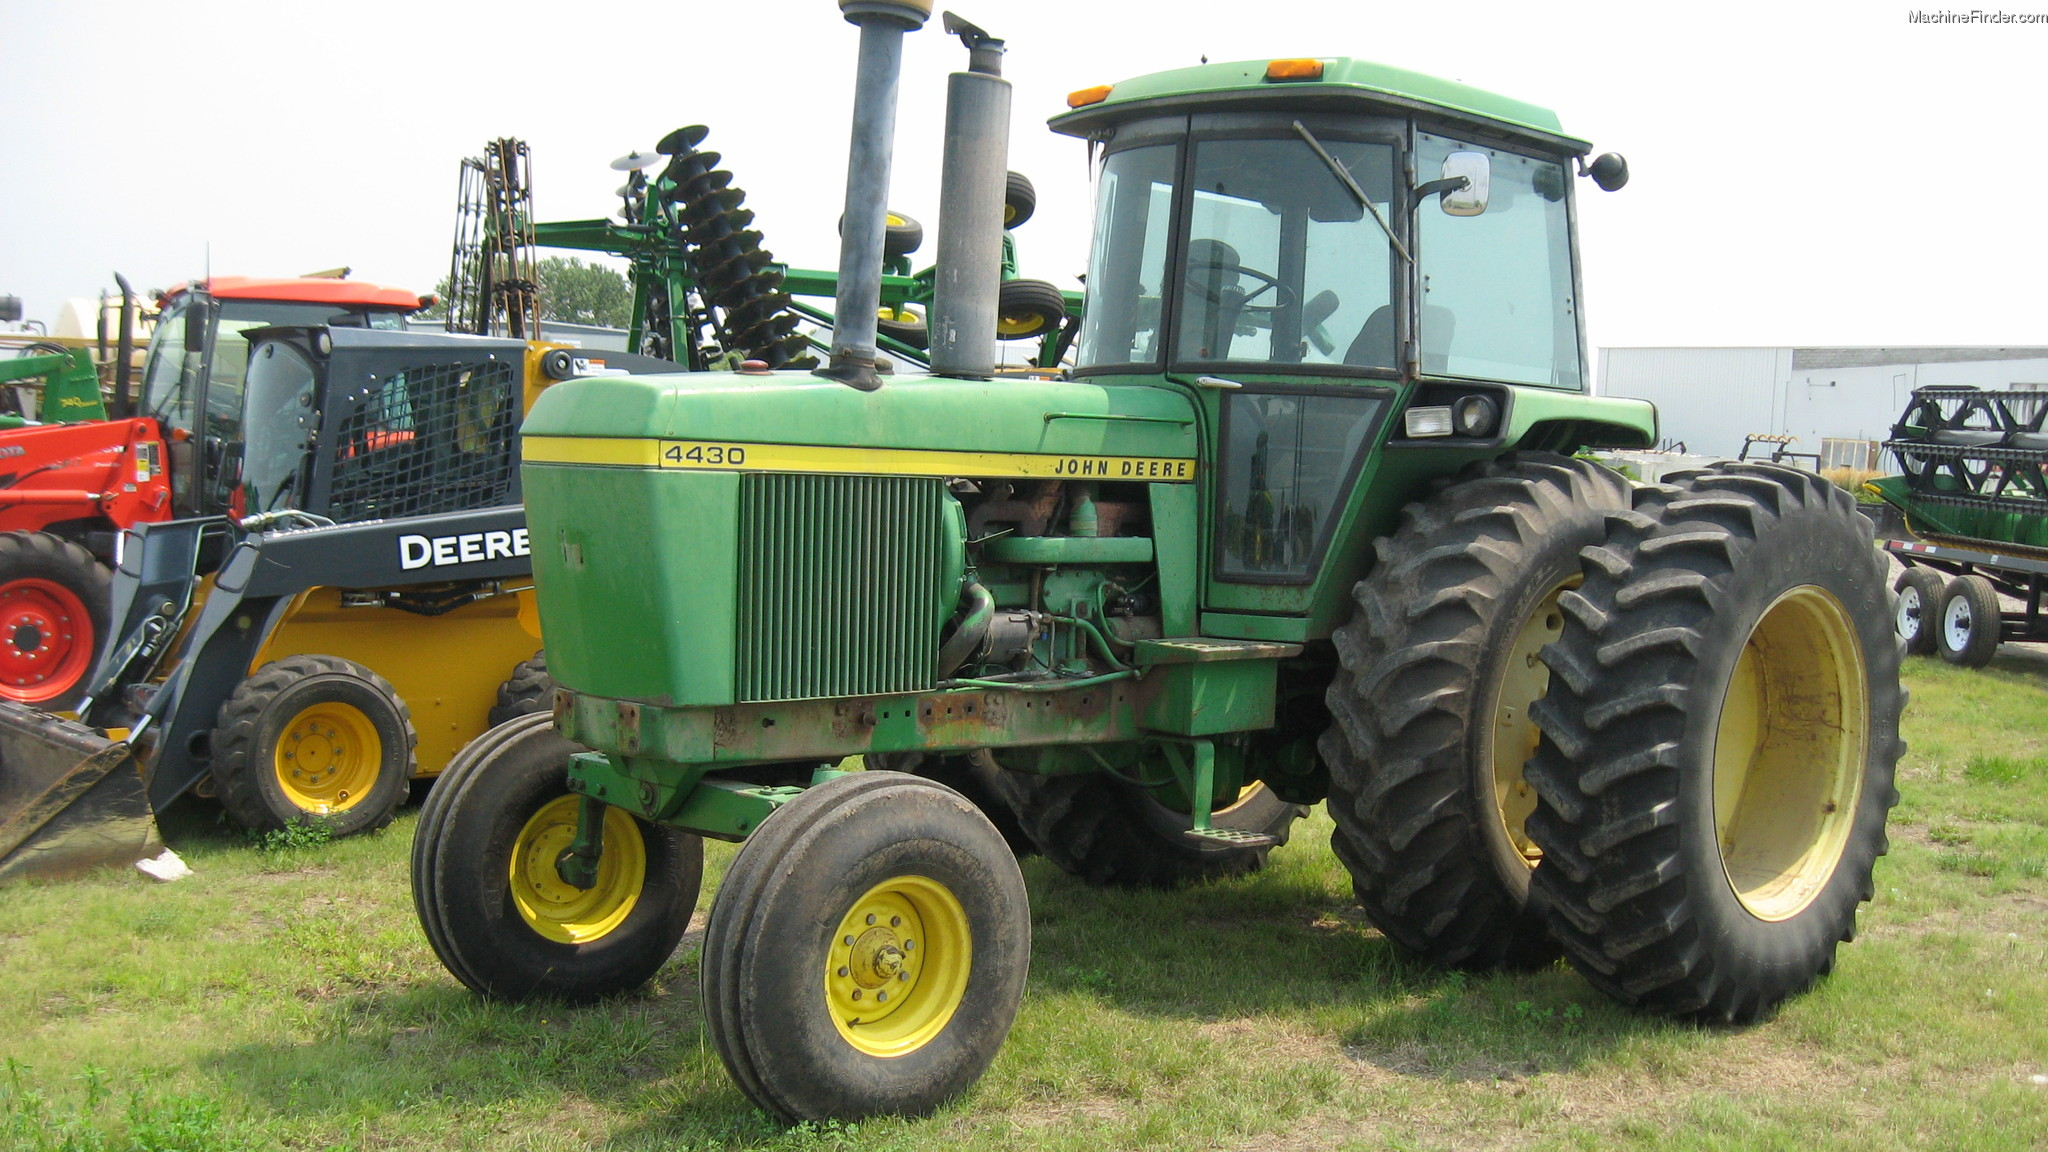 John Deere 4430 Cab Cabs Mygreen Wiring Schematic 1974 Tractors Row Crop 100hp Machinefinder